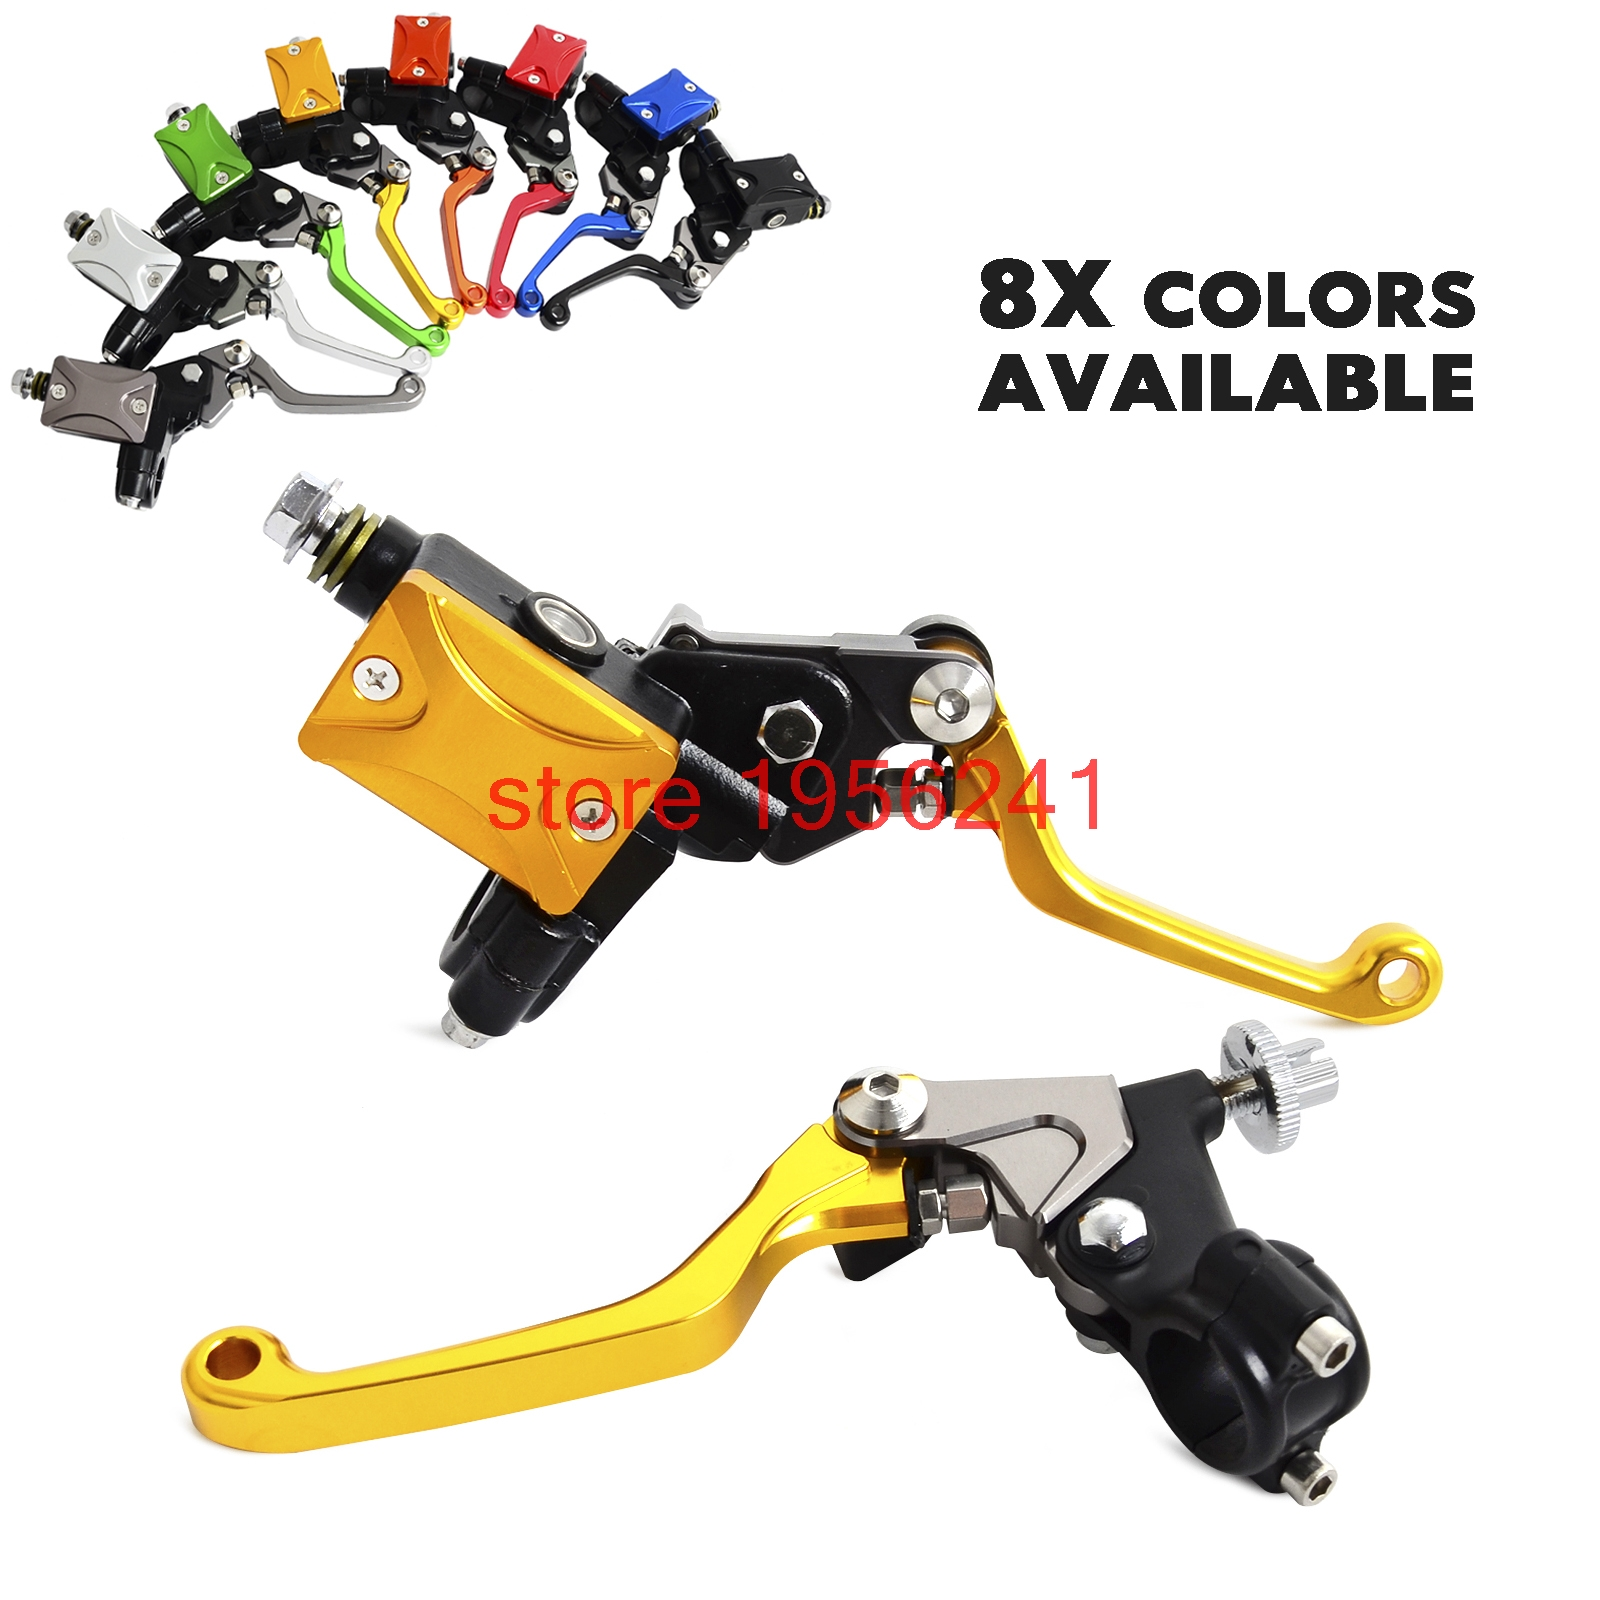 H2CNC Hydraulic Brake & Cable Clutch Lever Set Assembly For Yamaha YZ80 YZ85 YZ125 YZ250 YZ250F YZ426F YZ450F YFZ450 DT230 fxcnc universal stunt clutch easy pull cable system motorcycles motocross for yamaha yz250 125 yz80 yz450fx wr250f wr426f wr450